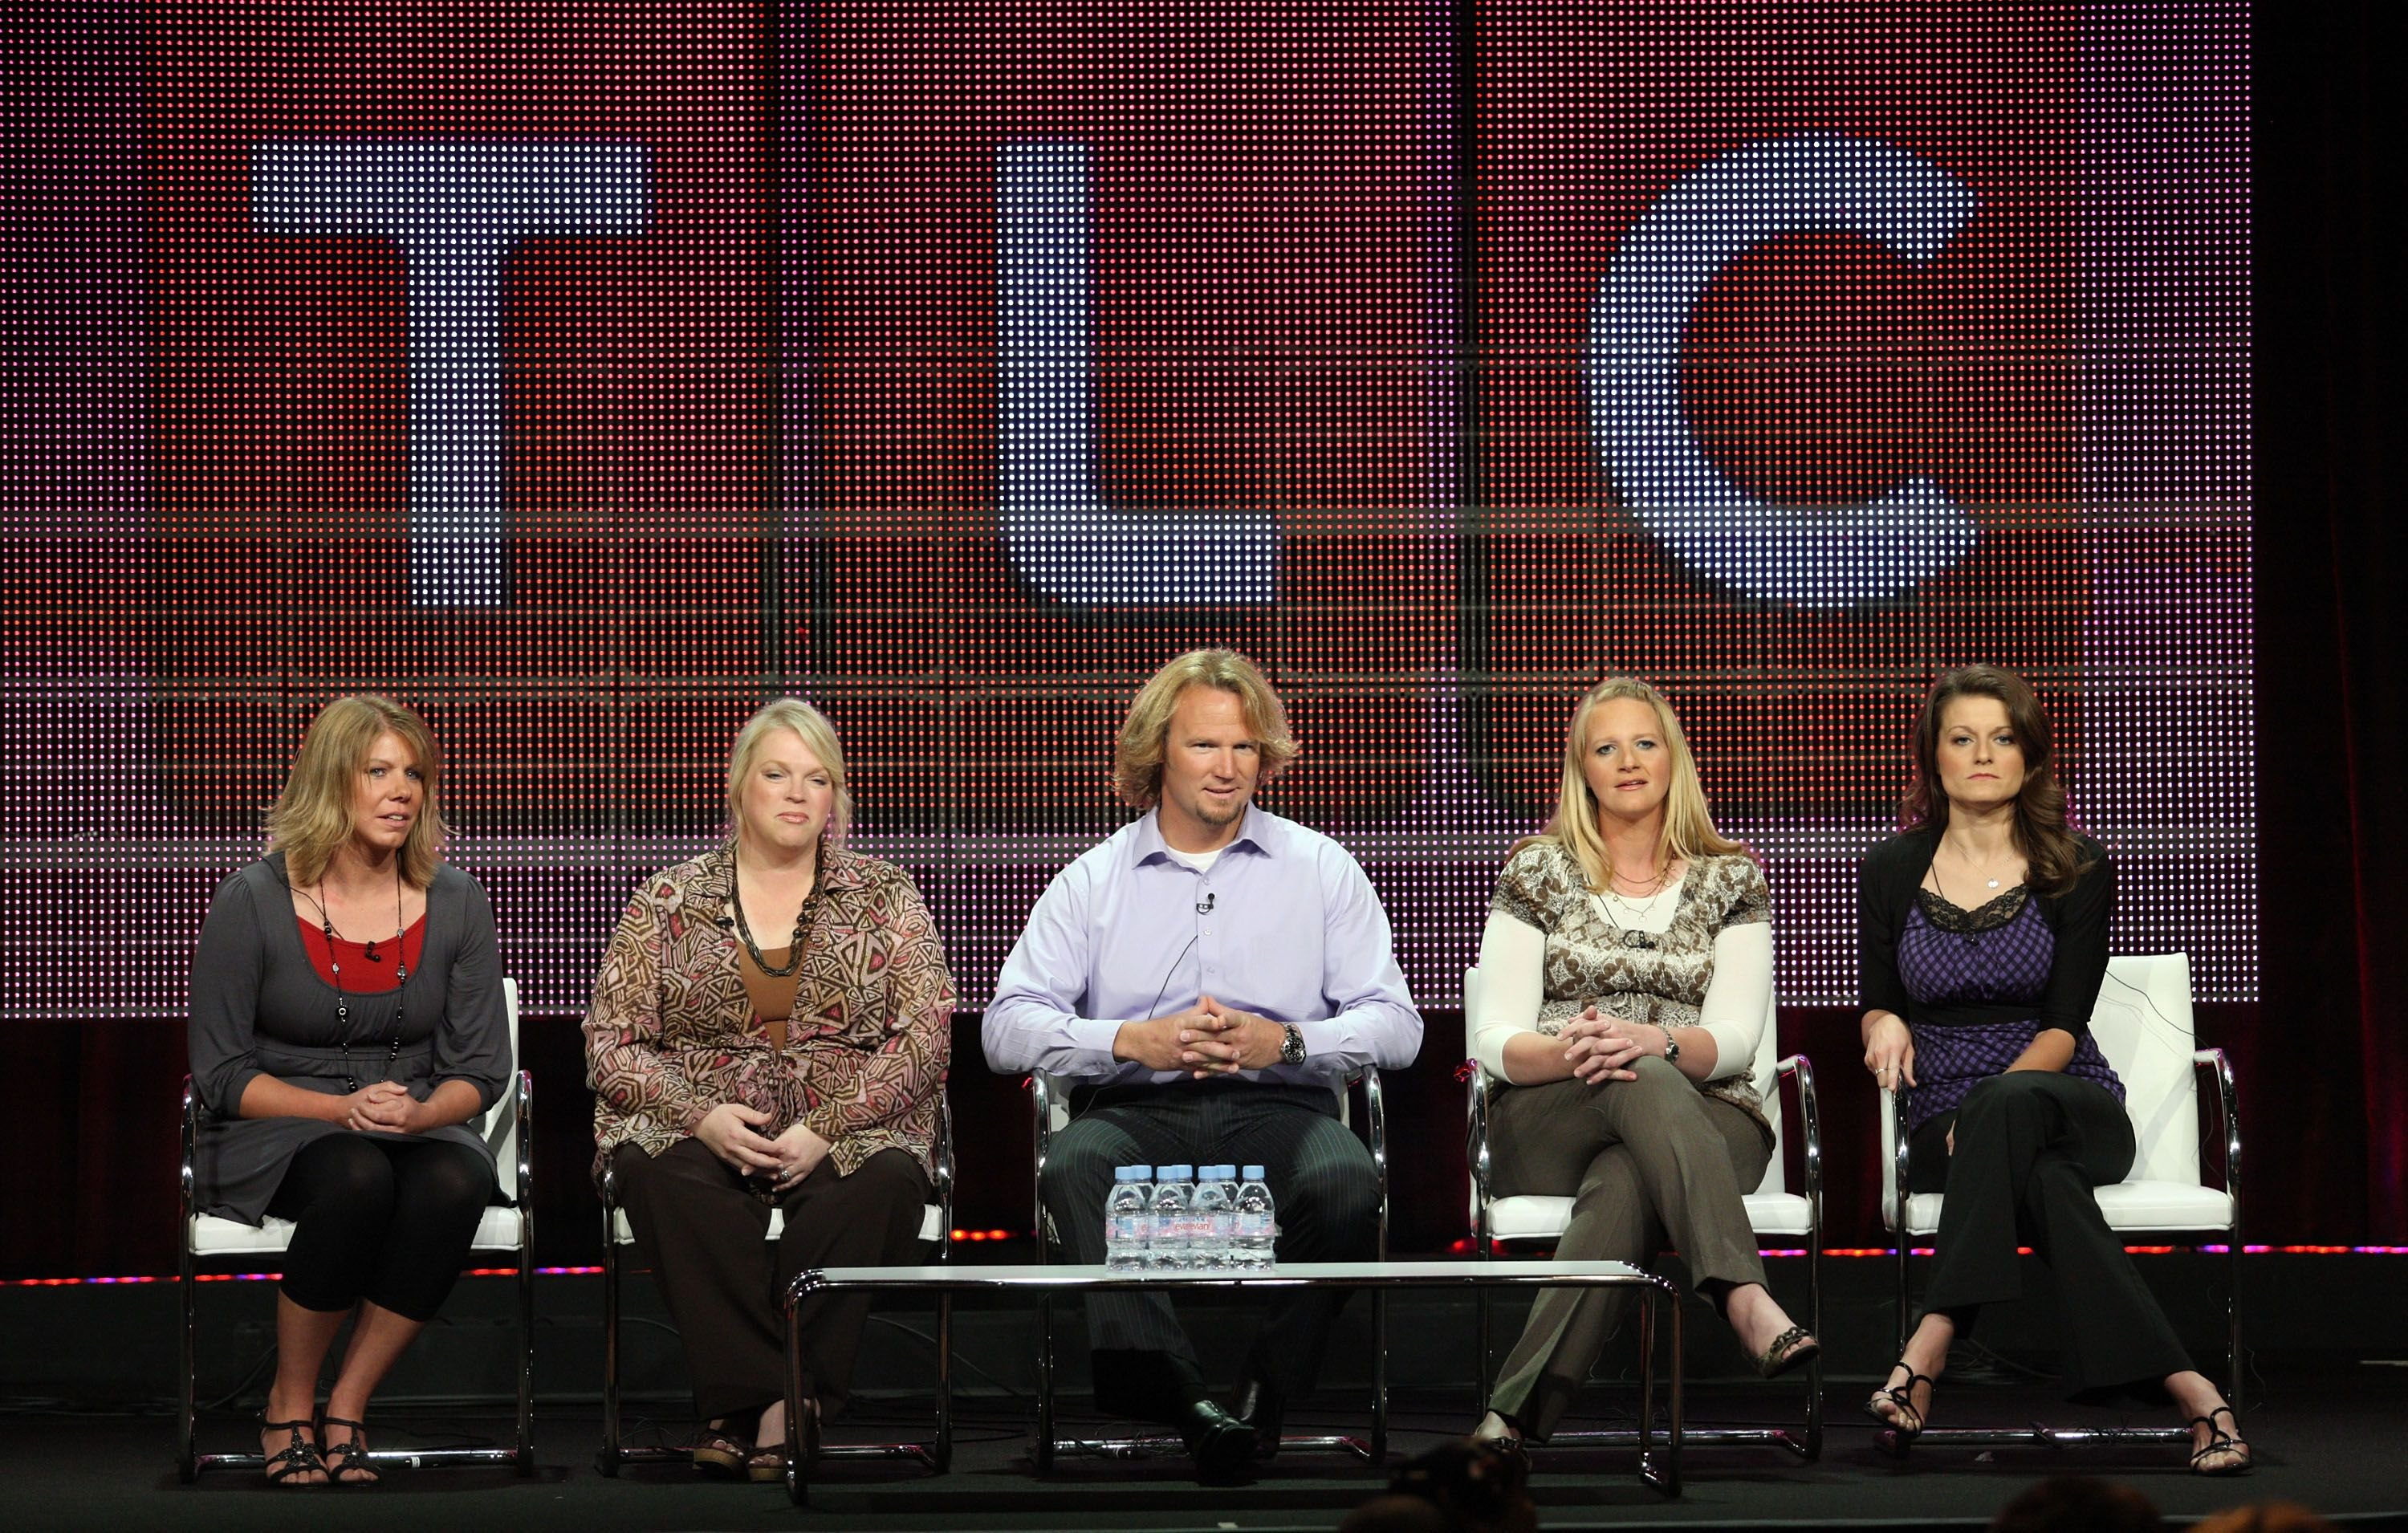 """Meri, Janelle, Kody, Christine, and Robyn Brown from """"Sister Wives"""" during the panel on the Summer TCA press tour on August 6, 2010 